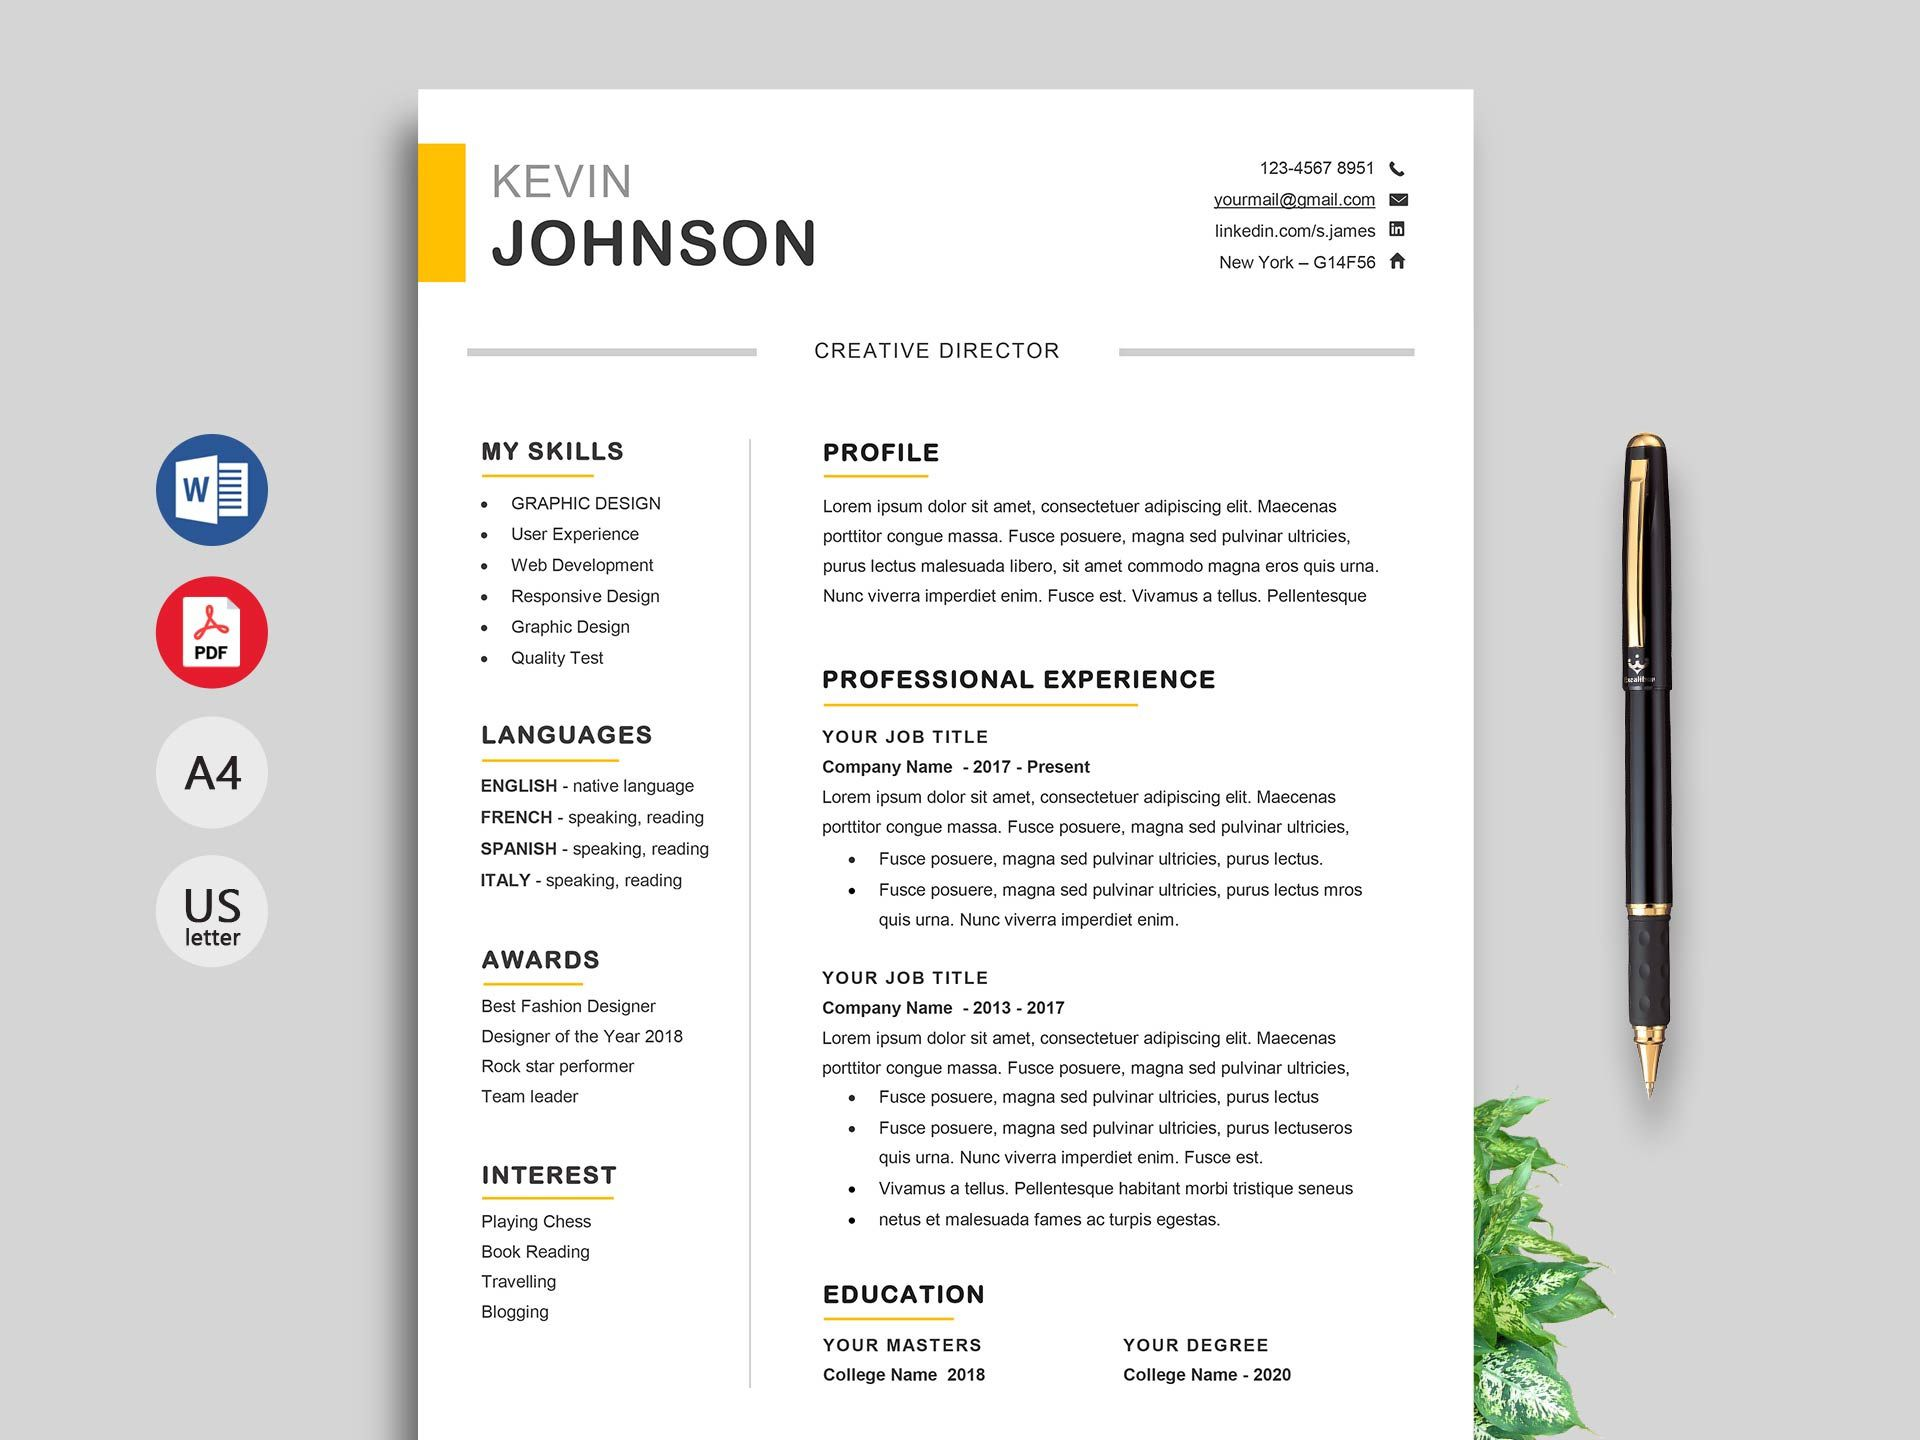 010 Unique Professional Resume Template 2019 Free Download Inspiration  CvFull